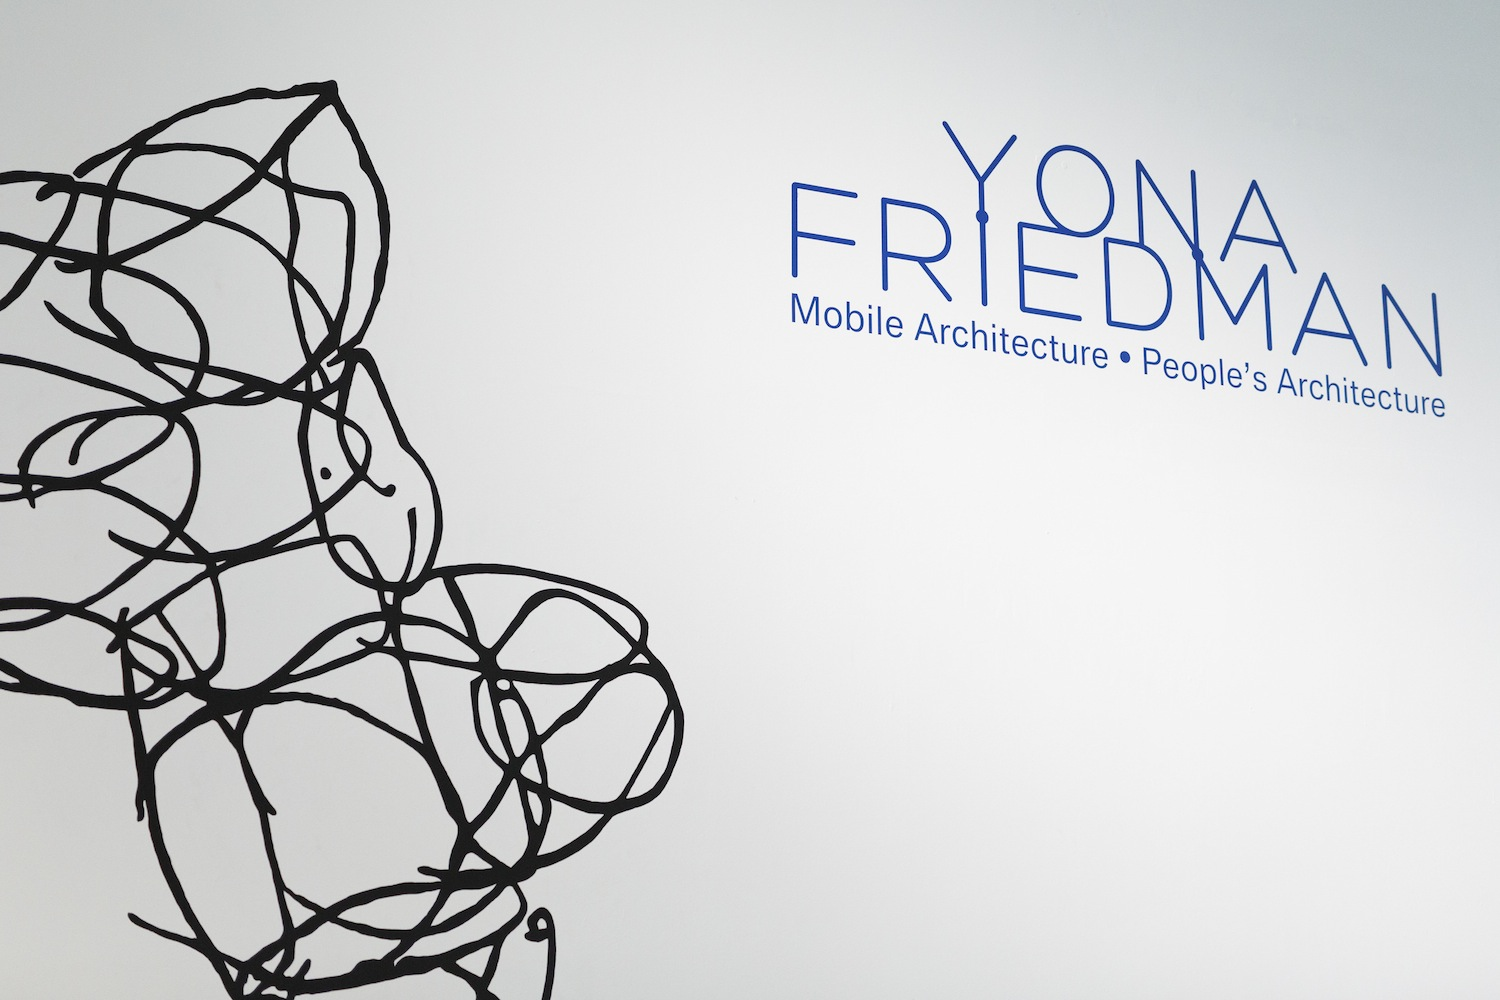 Architecture People yona friedman. mobile architecture, people's architecture | maxxi